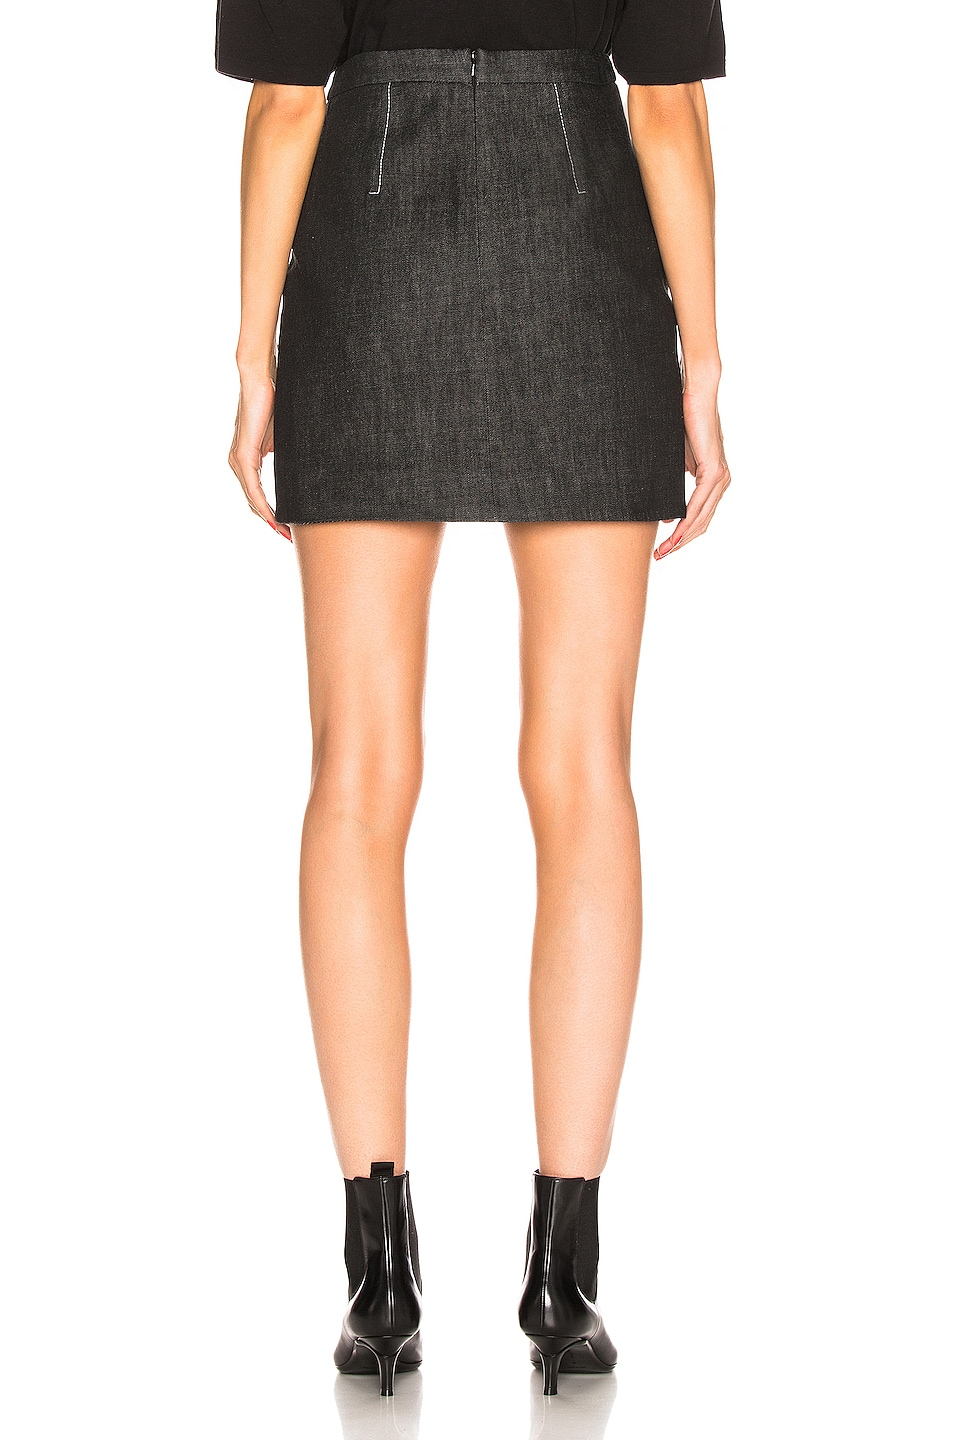 Image 3 of Proenza Schouler Stud Embroidery Mini Skirt in Black & Silver